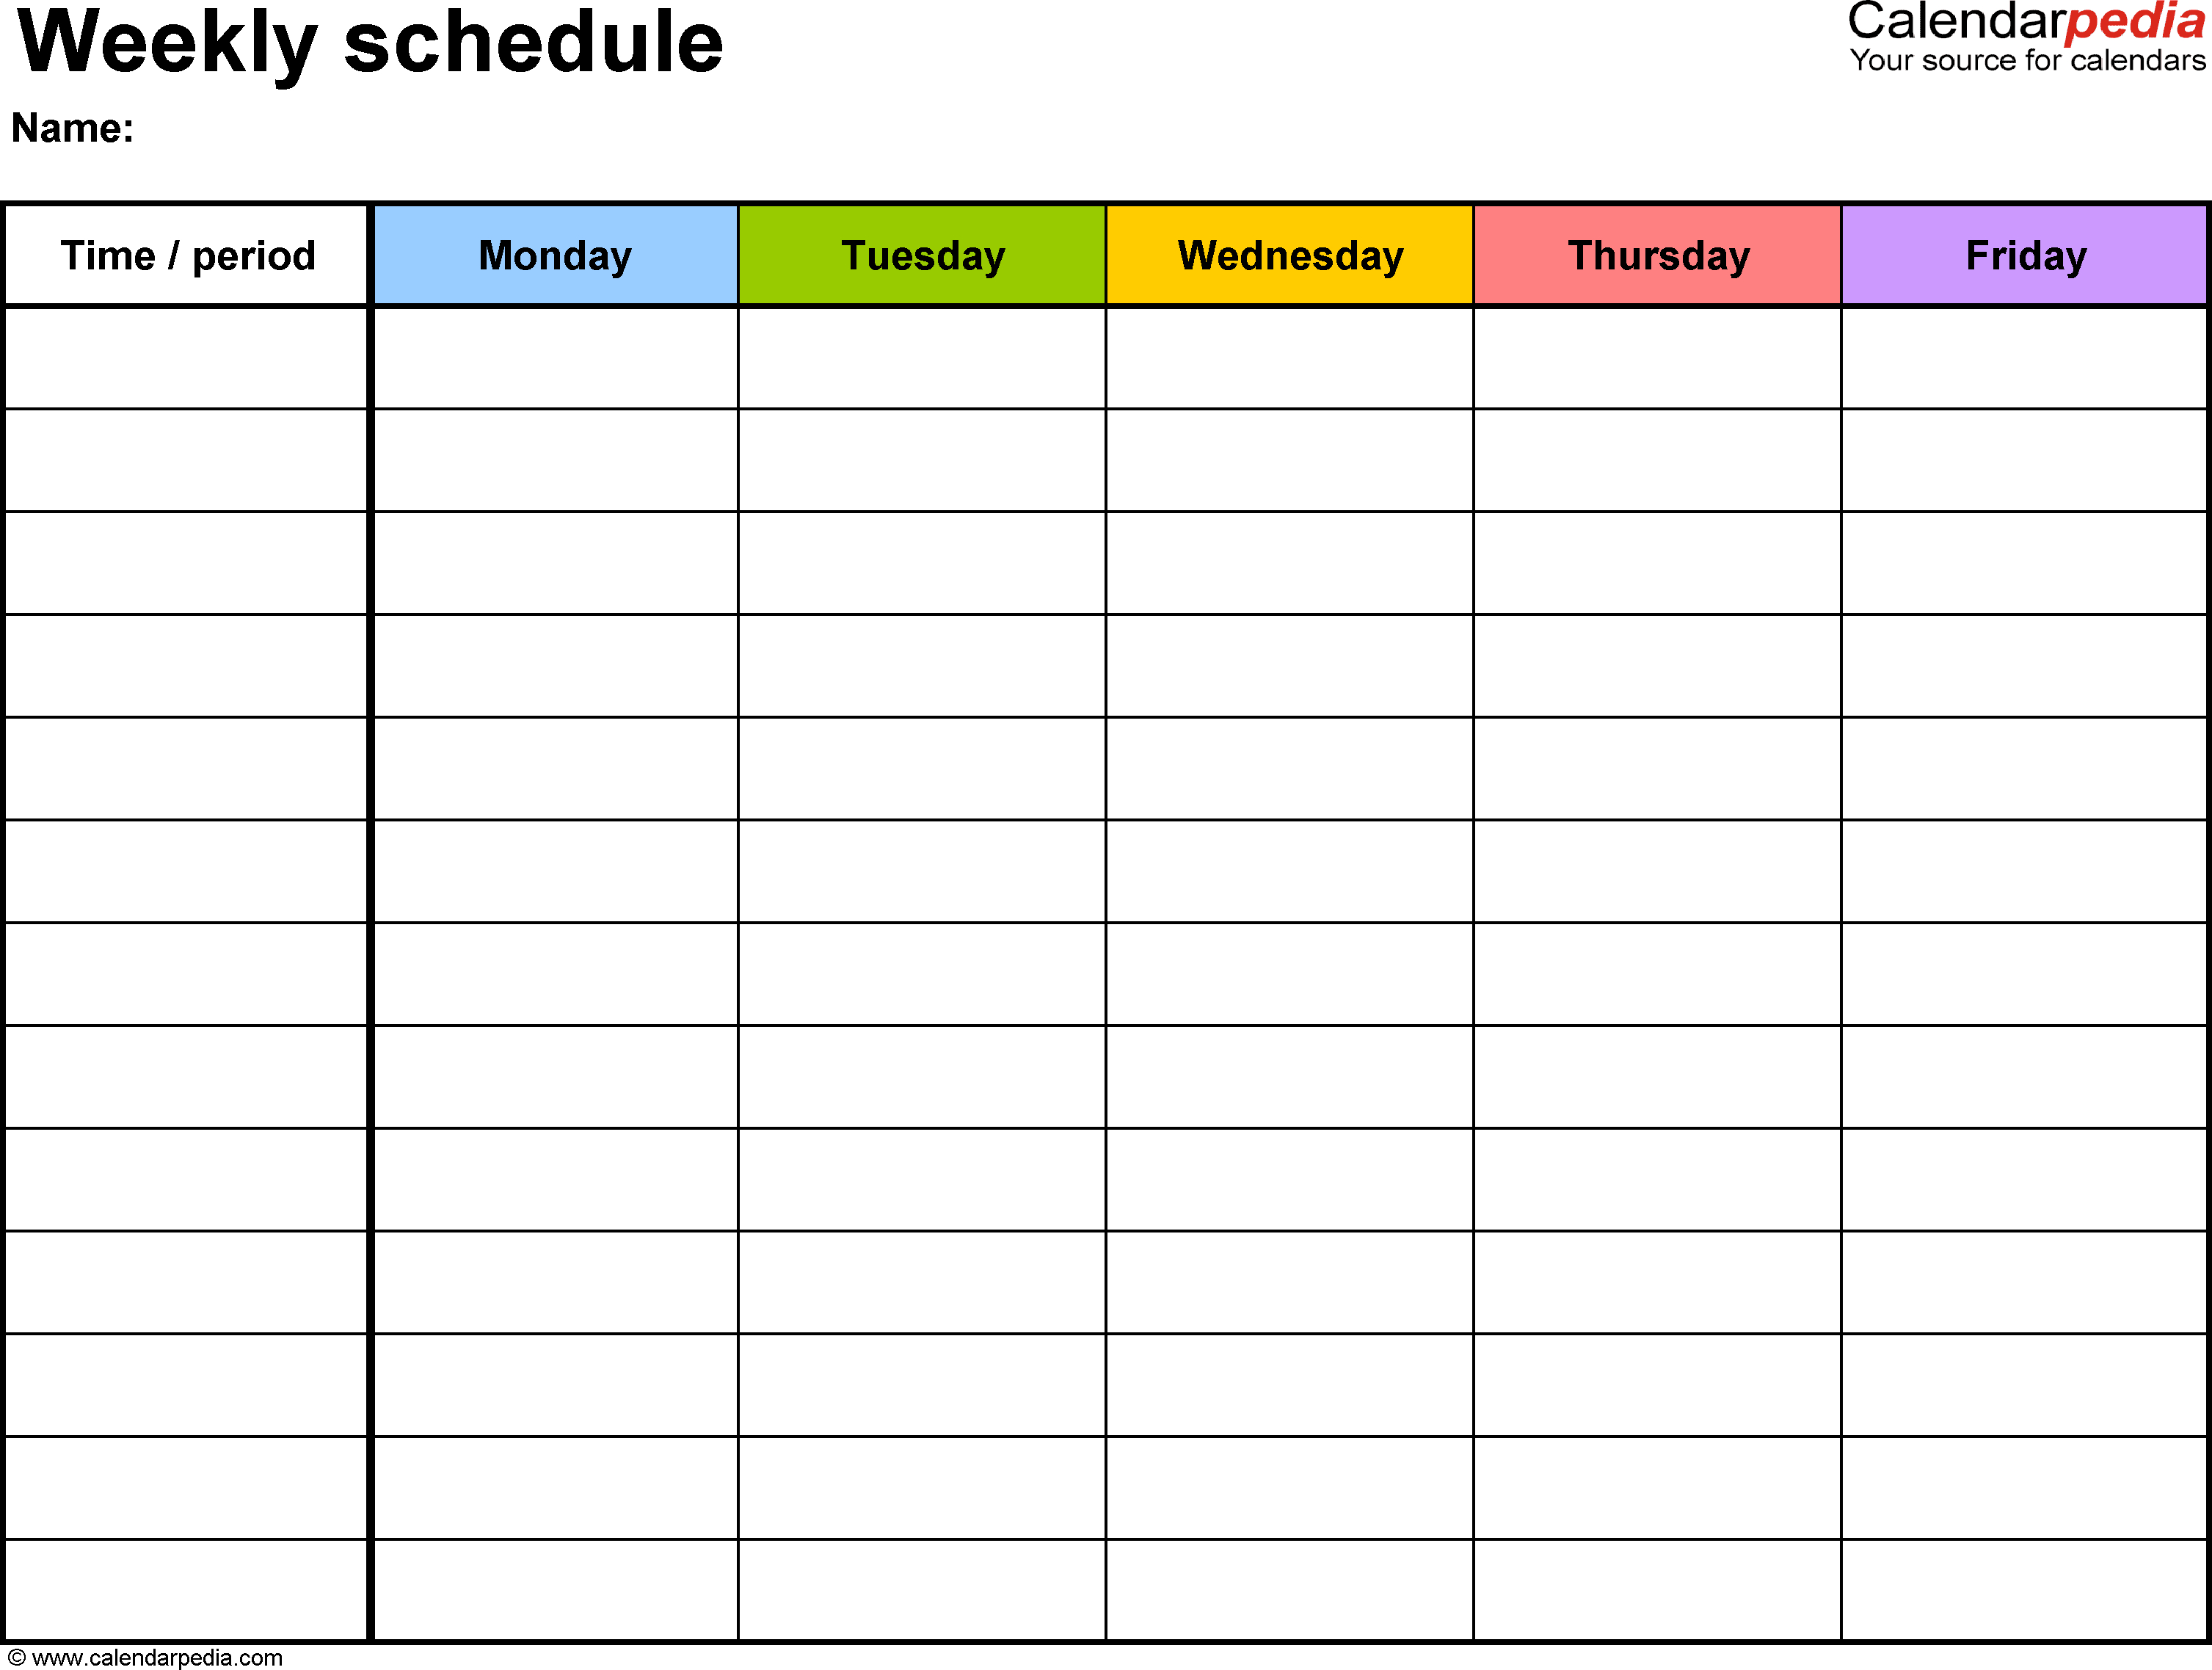 Free Weekly Schedule Templates For Word - 18 Templates within Weekly Blank Calendar Monday Through Friday